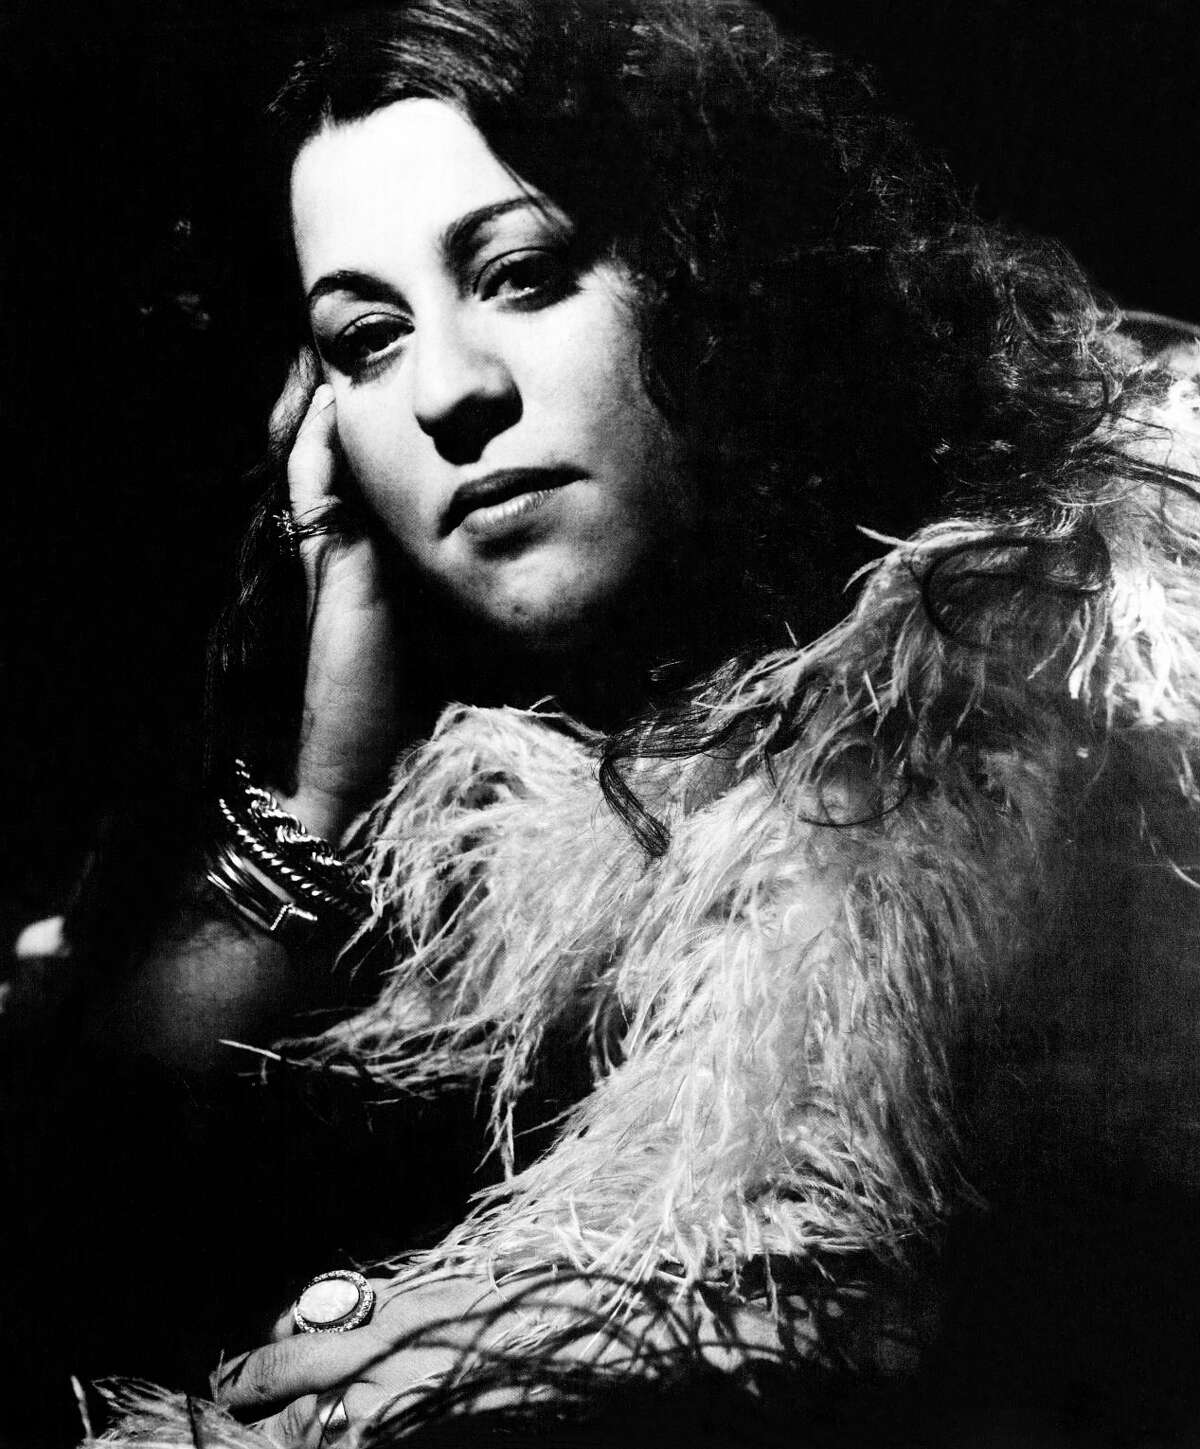 Mama Cass Elliot: The most popular member of the famed '60s group The Mamas and the Papas died choking on a ham sandwich. At least that's what caught on in popular culture before the truth really came out. A ham sandwich was found next to her bed in her London apartment when her body was discovered. And between the coroner and the press, word got out that she choked to death - which added to more fat shaming given her notable large size. Columnist Sue Cameron told People Magazine in 2020 that it wasn't a ham sandwich that killed the Rock & Roll Hall of Famer, but a heart attack. She told the popular publication that she spoke to Elliot's manager a few days after she was discovered deceased and insisted that she write and put out that the cause of death was a ham sandwich because half a sandwich was found on the nightstand. It's since been revealed that Elliot's fad diets, drug use and weight issues contributed to her death.